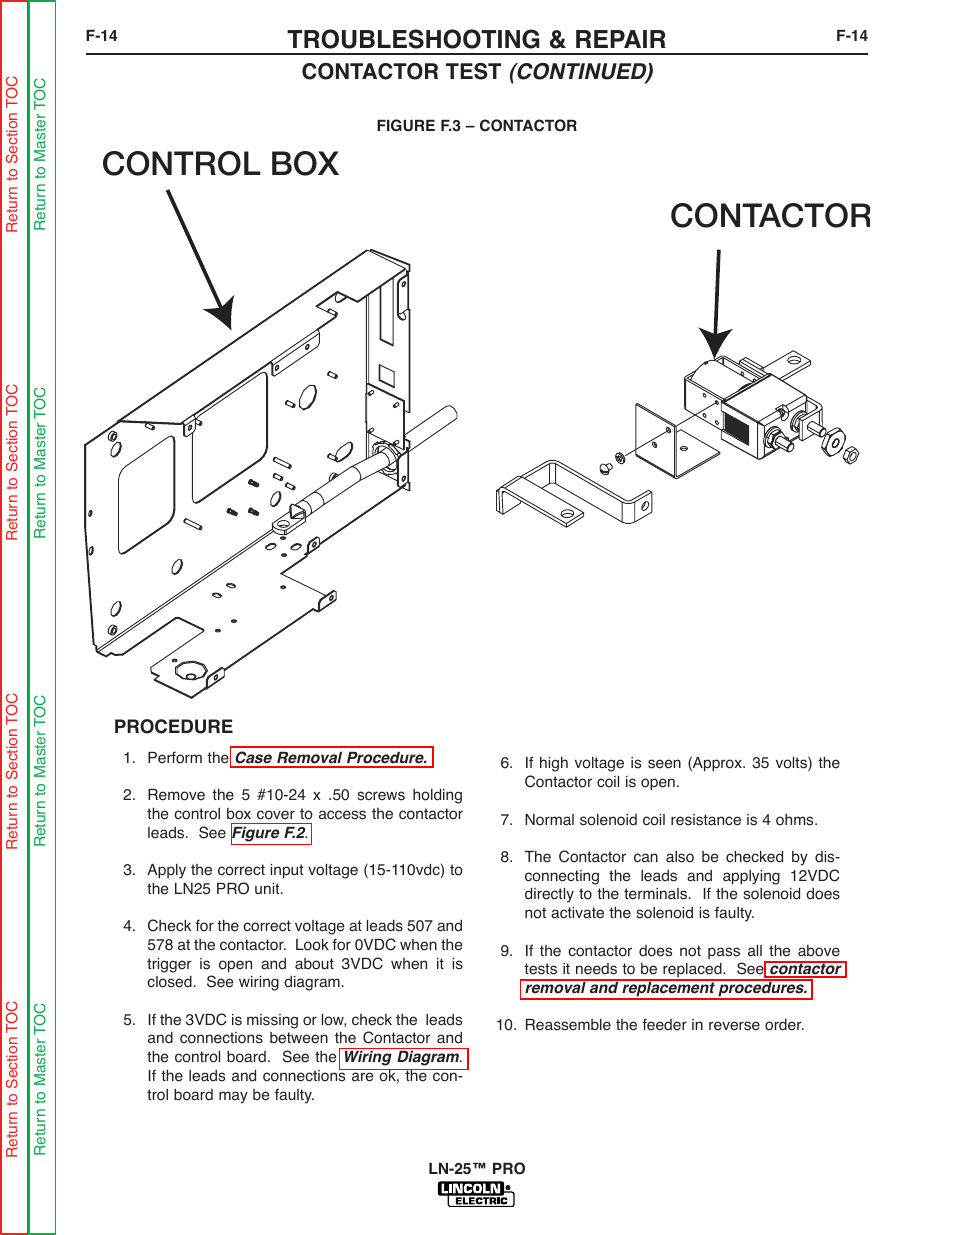 lincoln electric ln 25 svm179 b page58 contactor control box, troubleshooting & repair, contactor test